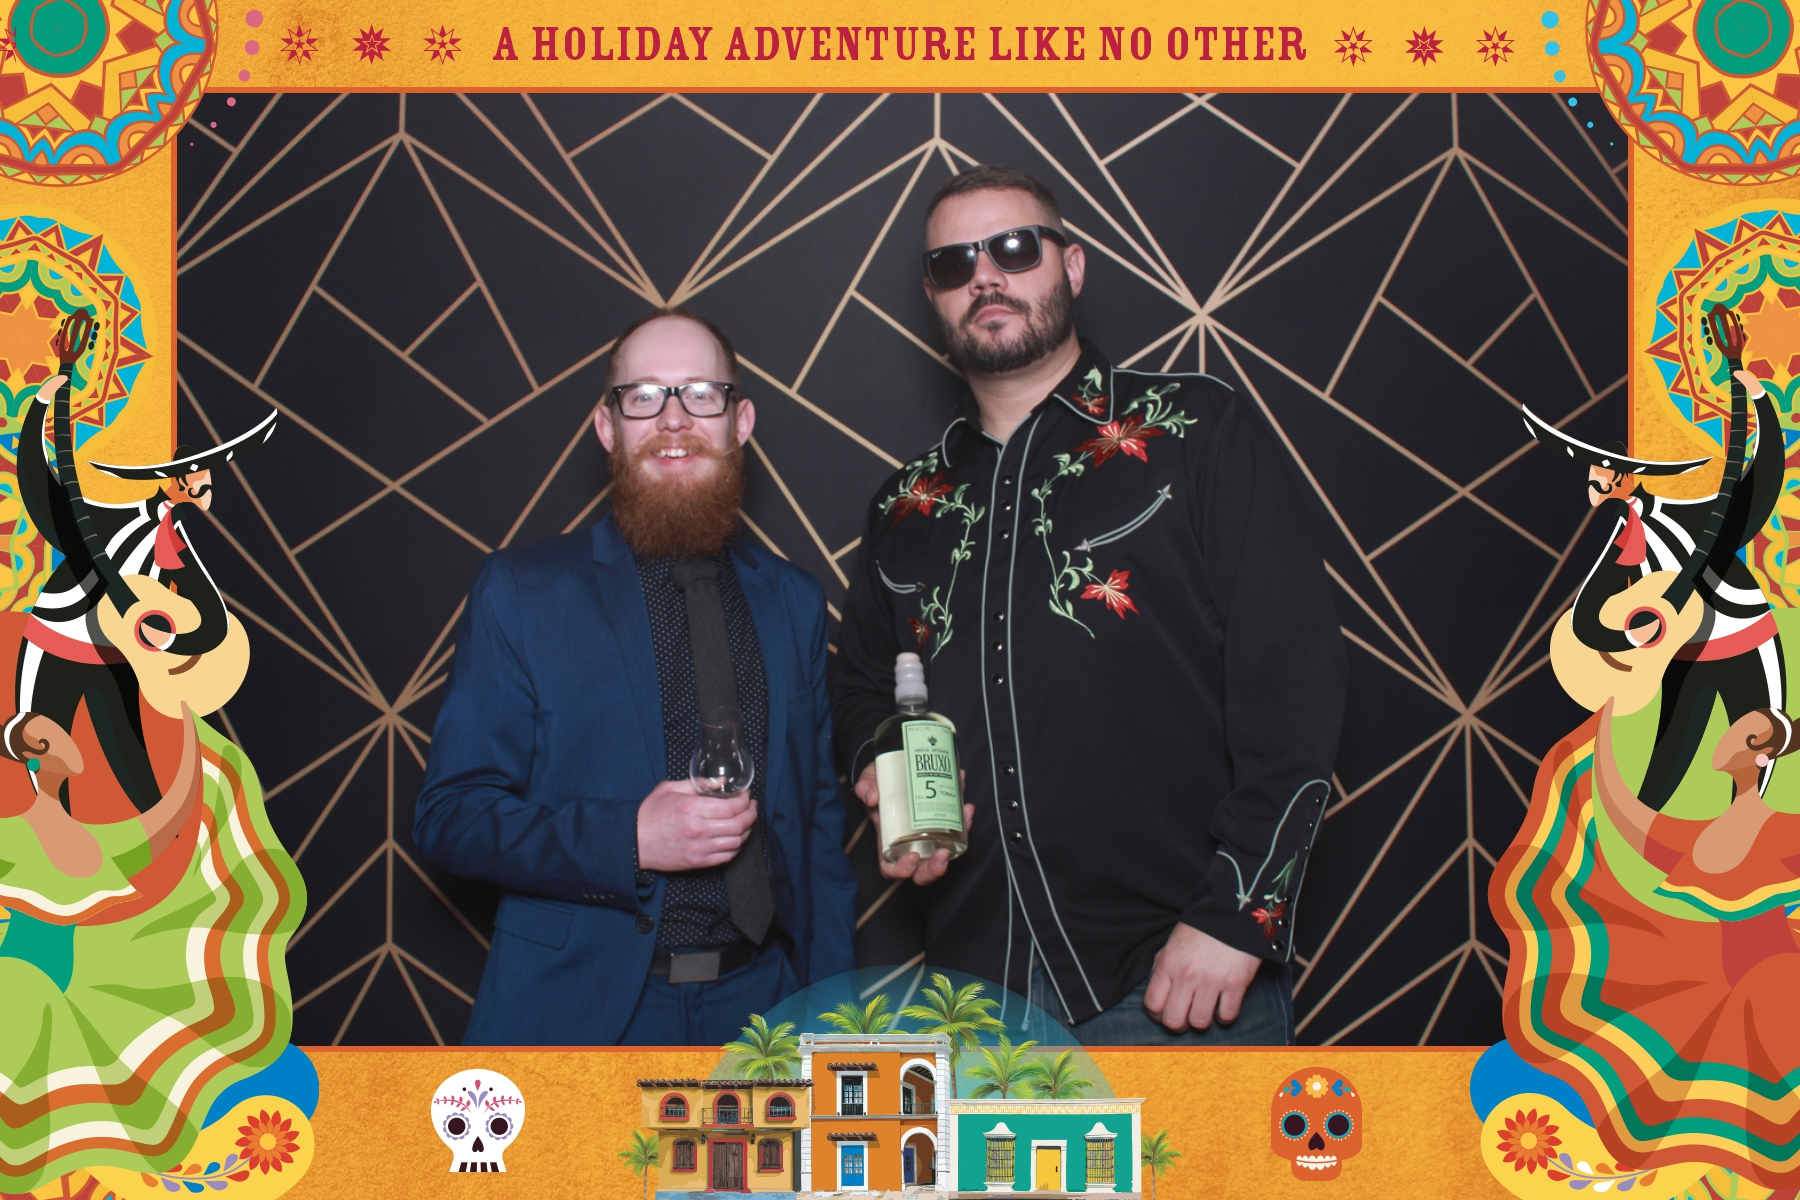 A Holiday Adventure Like No Other 2019 | View more photos from the event at boothgallery.com/u/FlashworksPhotoboothInc/A-Holiday-Adventure-Like-No-Other-2019